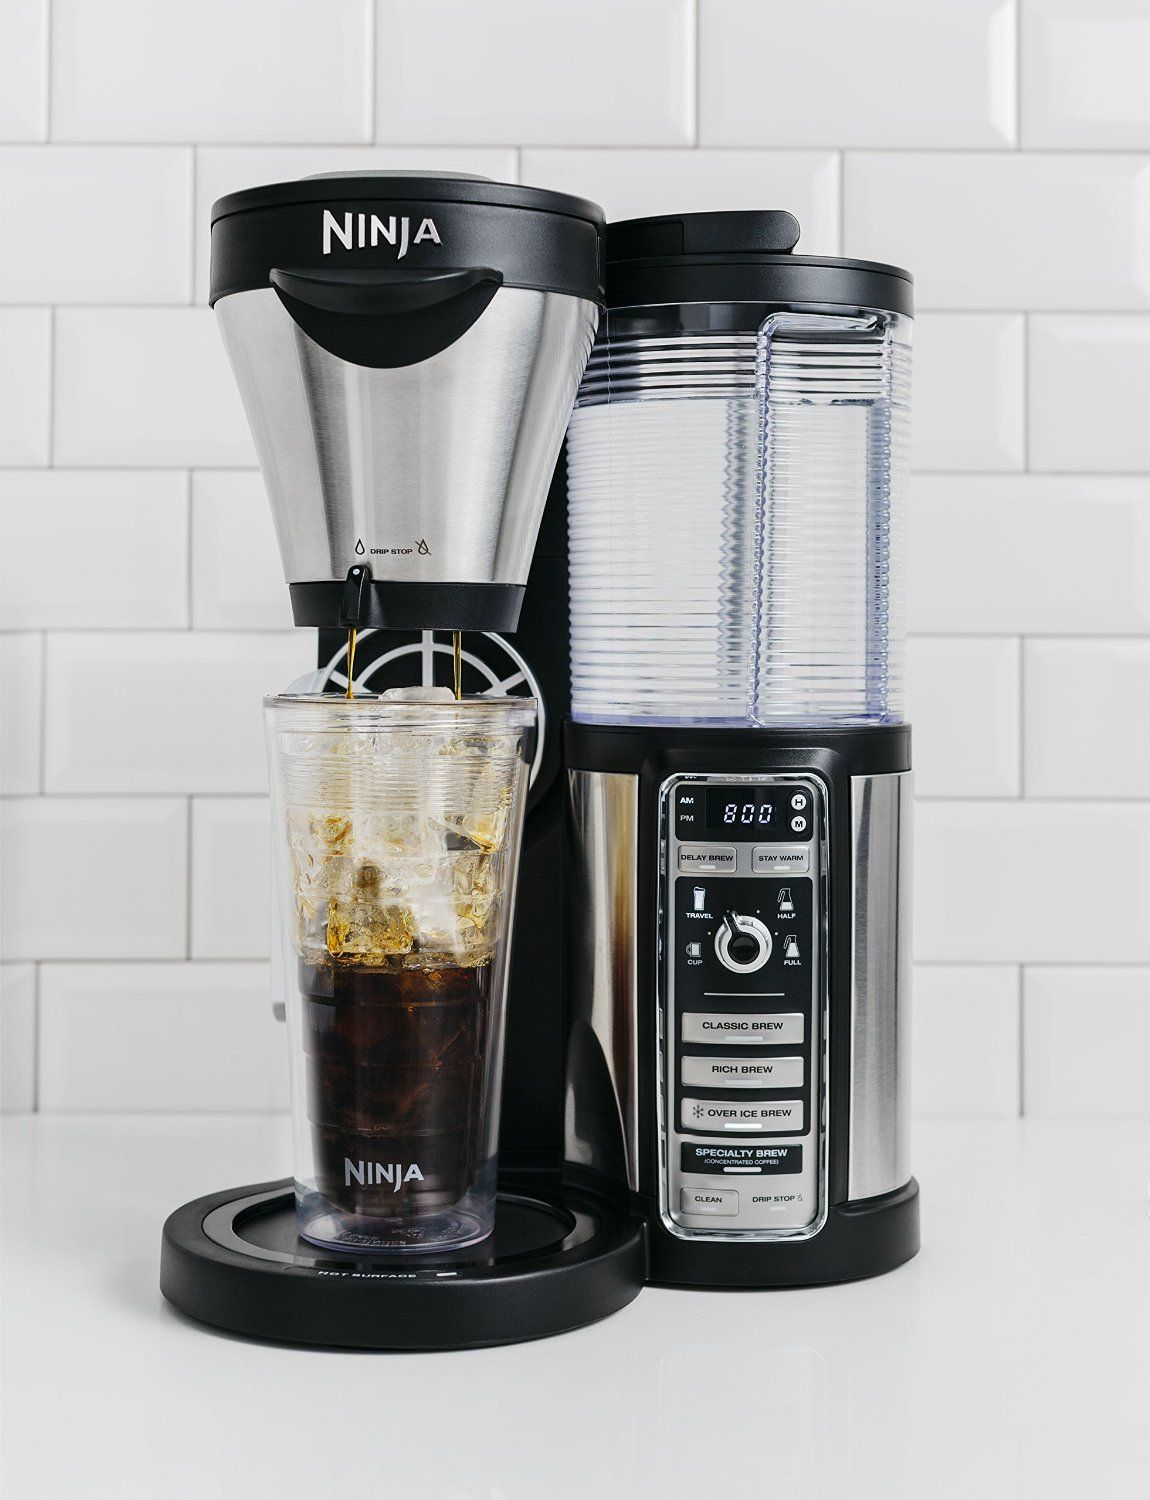 Ninja Espresso Gifts Need it afflink Ninja coffee